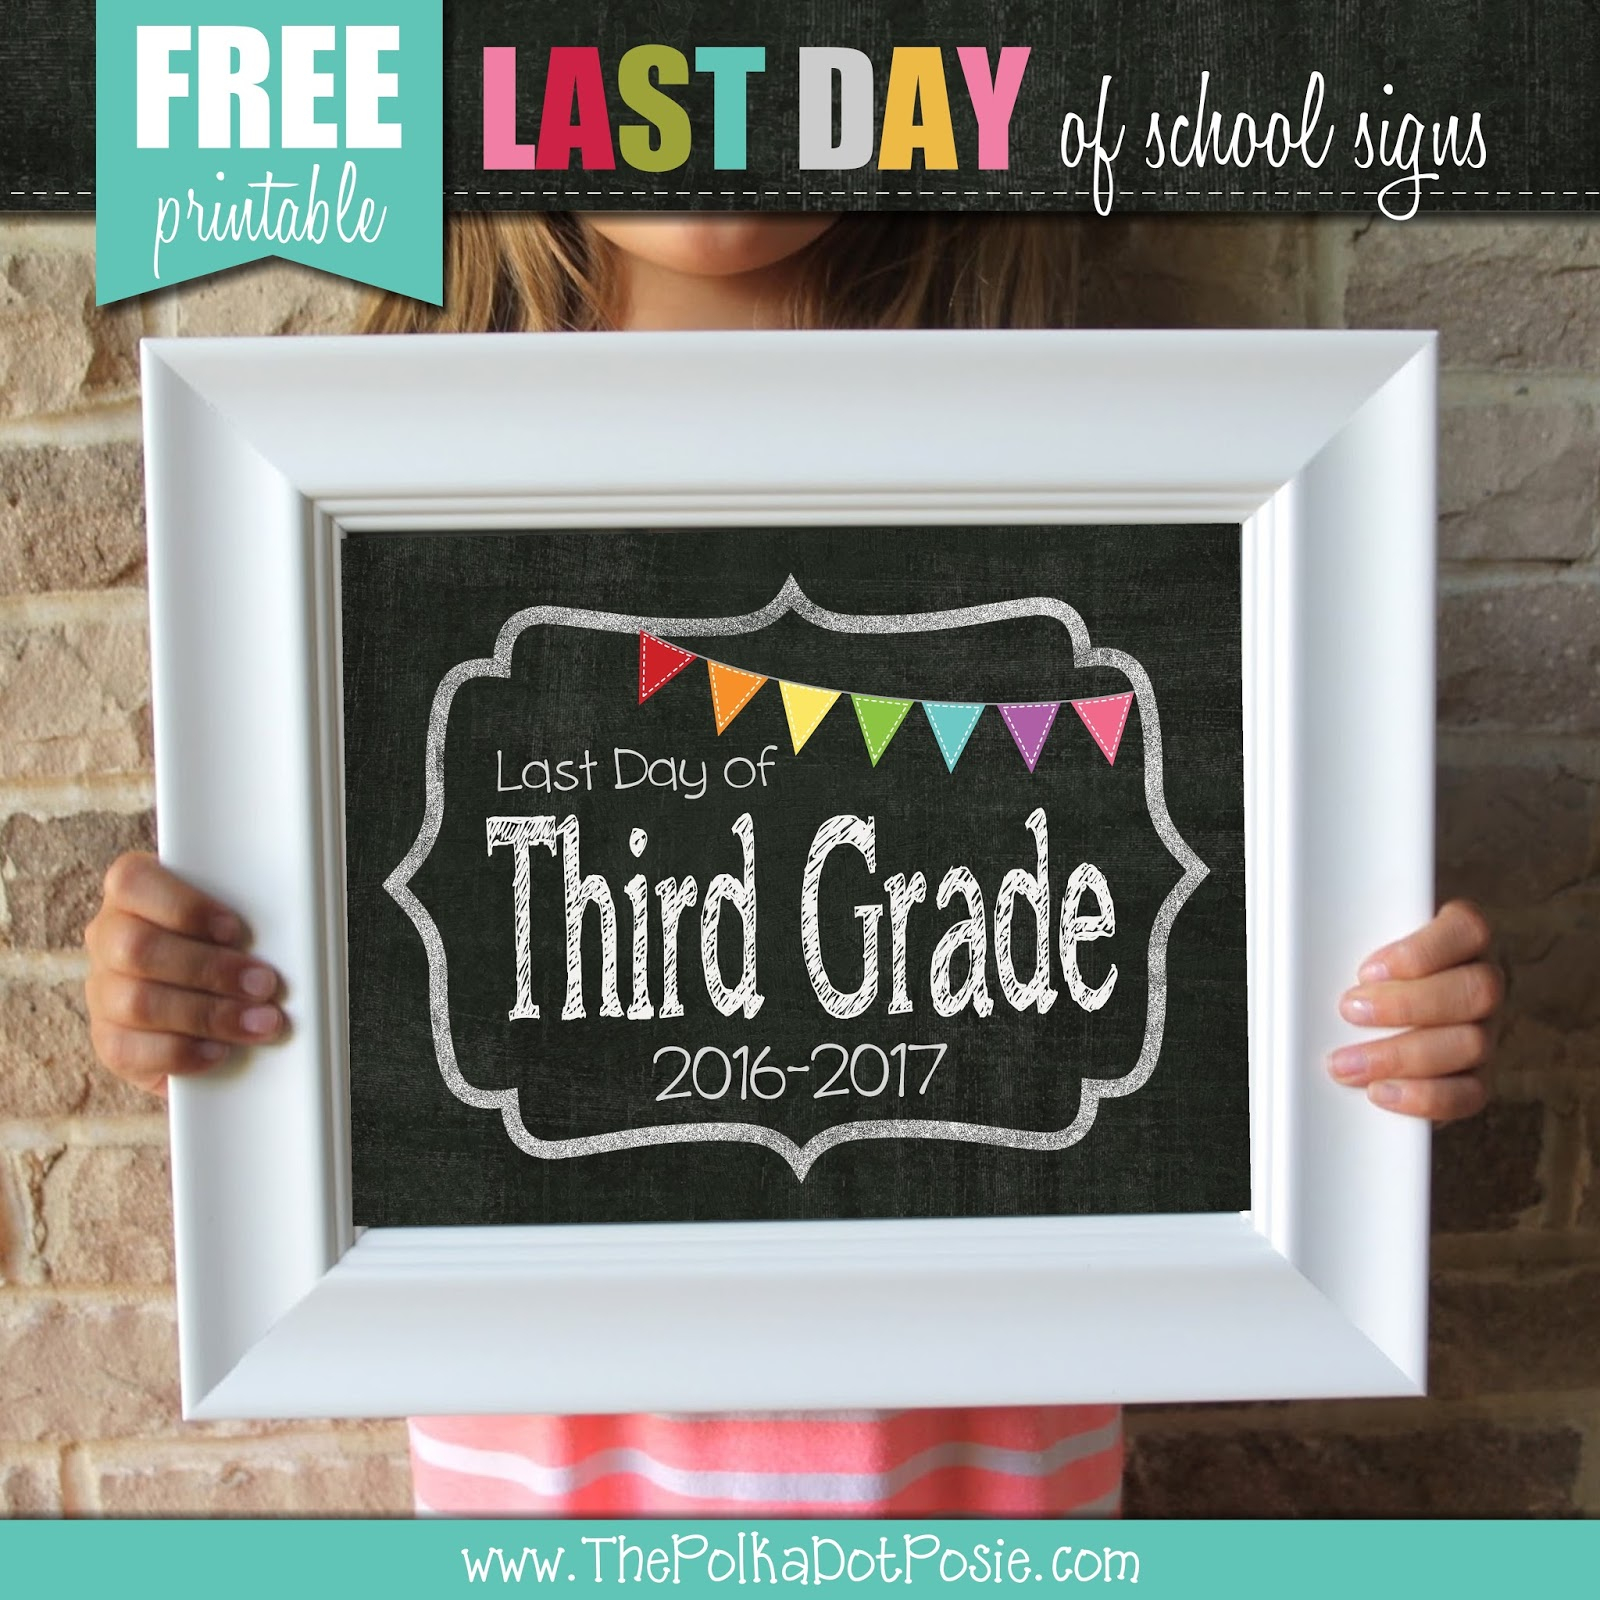 2017 First Day Of School Printables Free - 10.16.hus-Noorderpad.de • - First Day Of School Printable Free